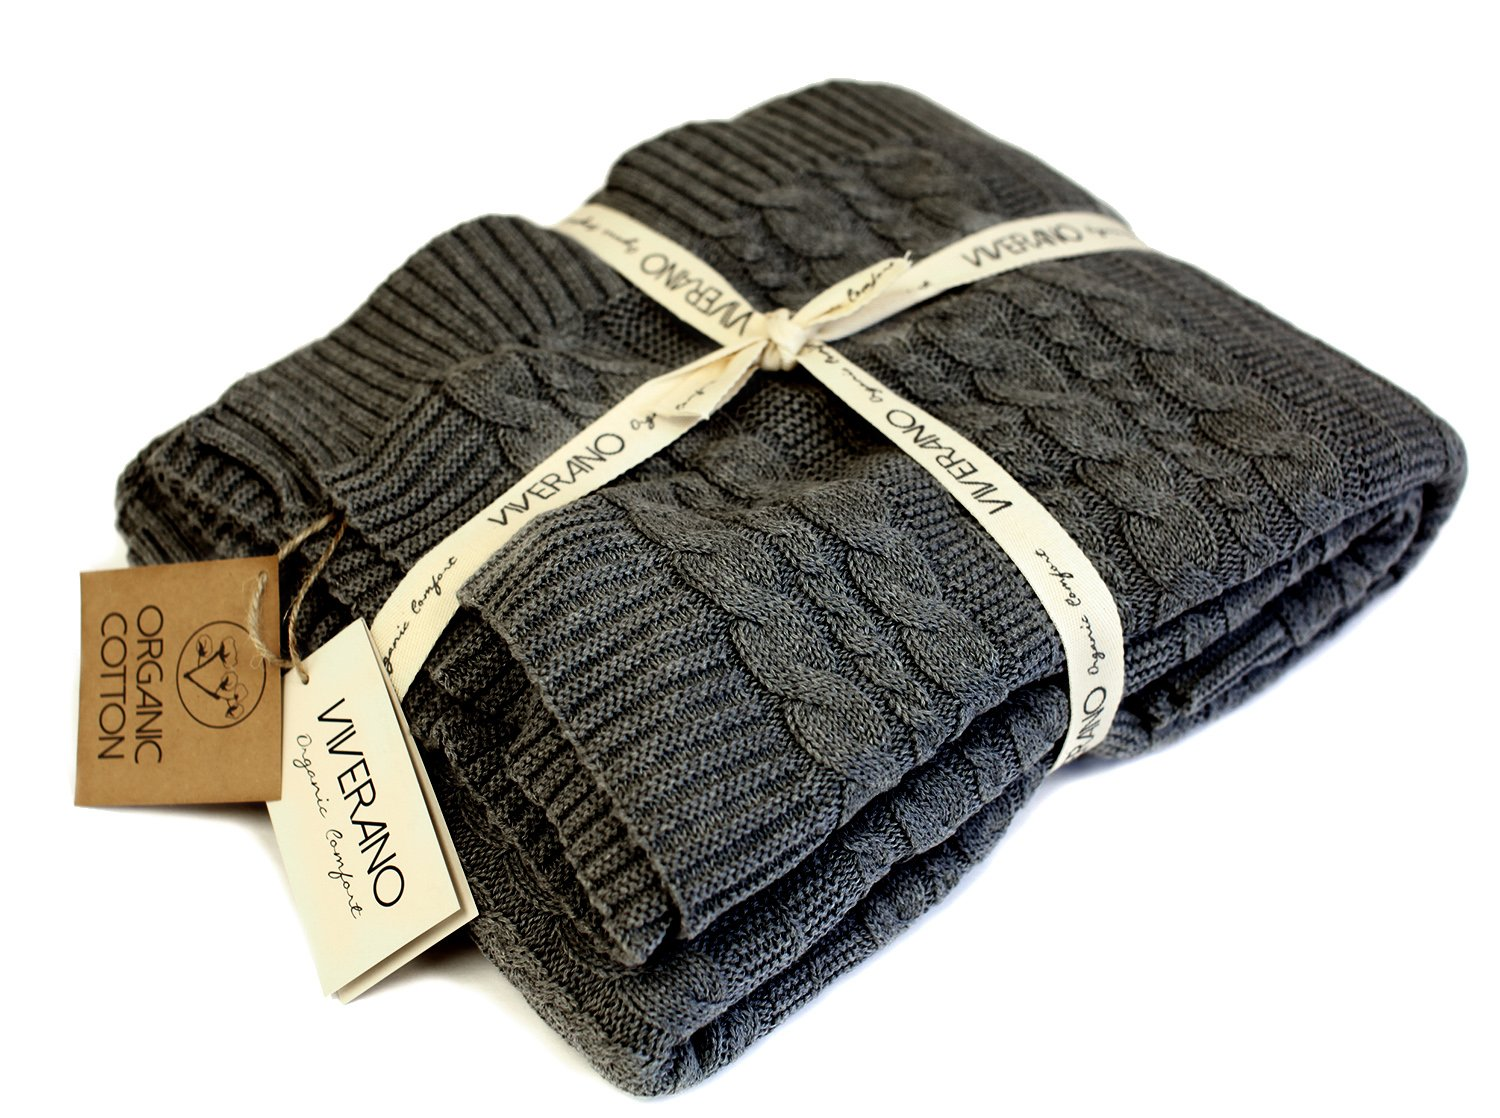 Viverano 100% Organic Cotton Throw Cable Knit Blanket (50''x70'') Super Soft Warm Luxurious All-Season Non-Toxic Eco-friendly (Charcoal)